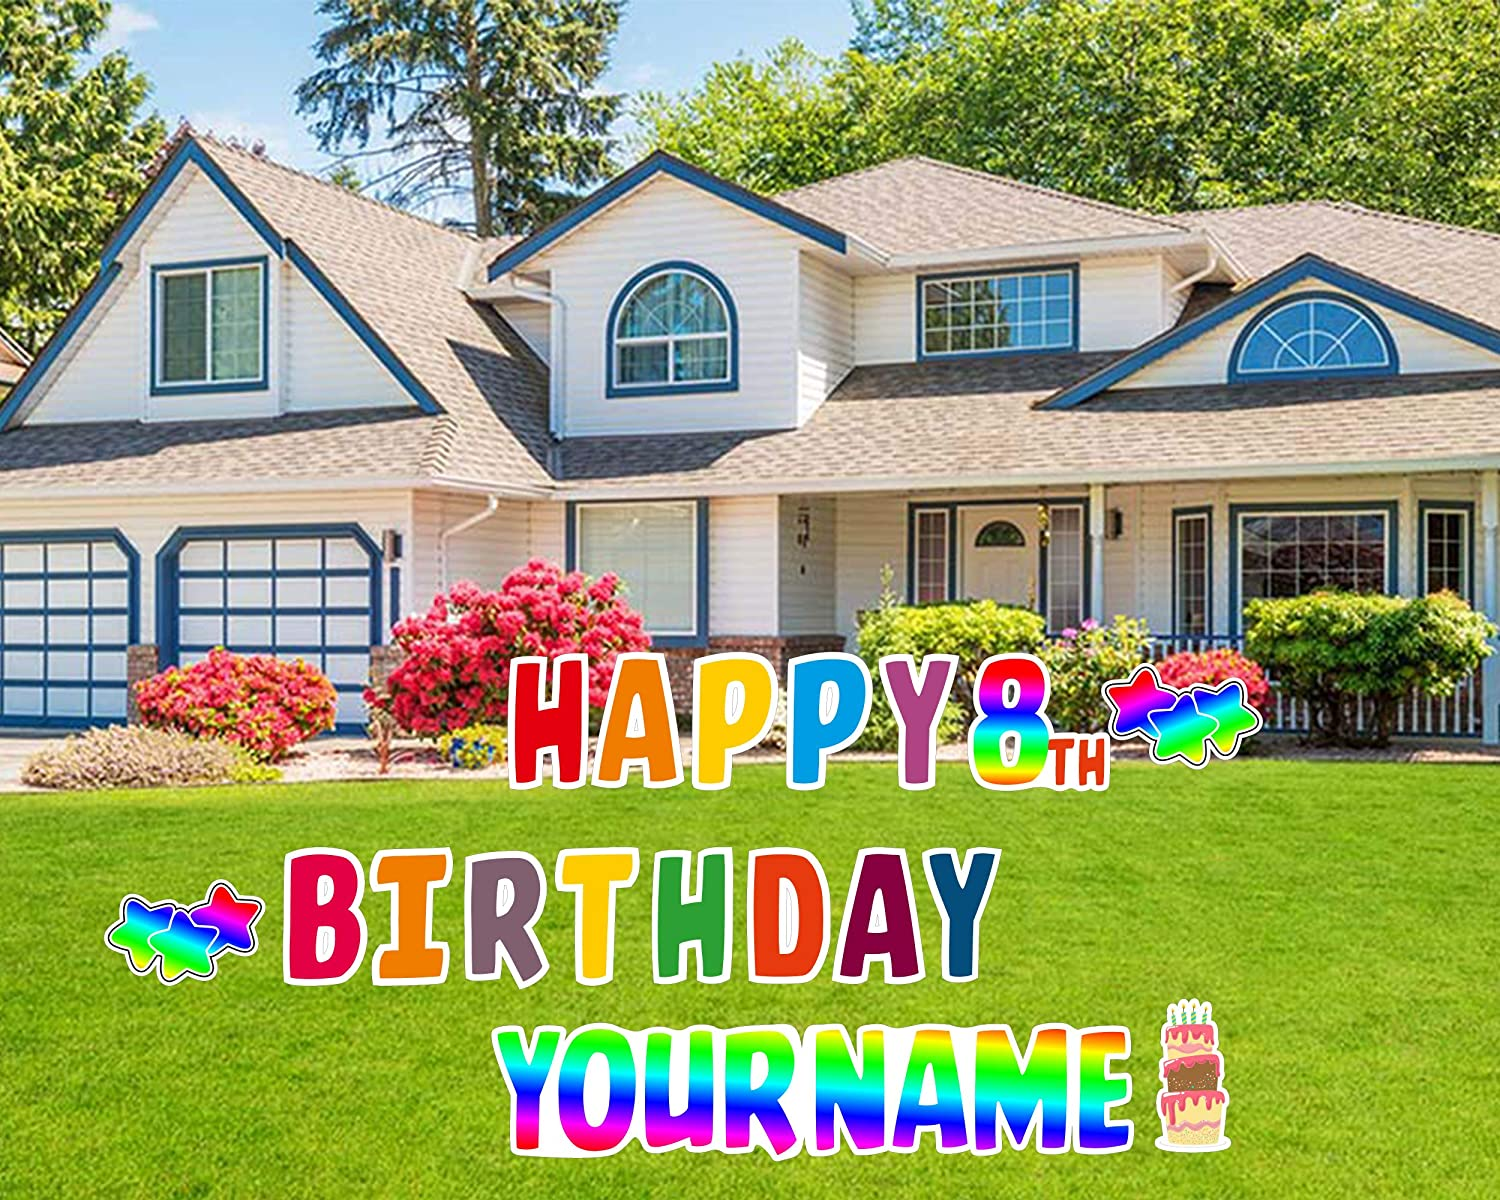 Happy Birthday Lawn Signs, Yard Signs, Outdoor Lawn Decorations, Happy Birthday Lawn Ornaments, Kids Birthday Signs, Colorful Happy Birthday (Colorful)